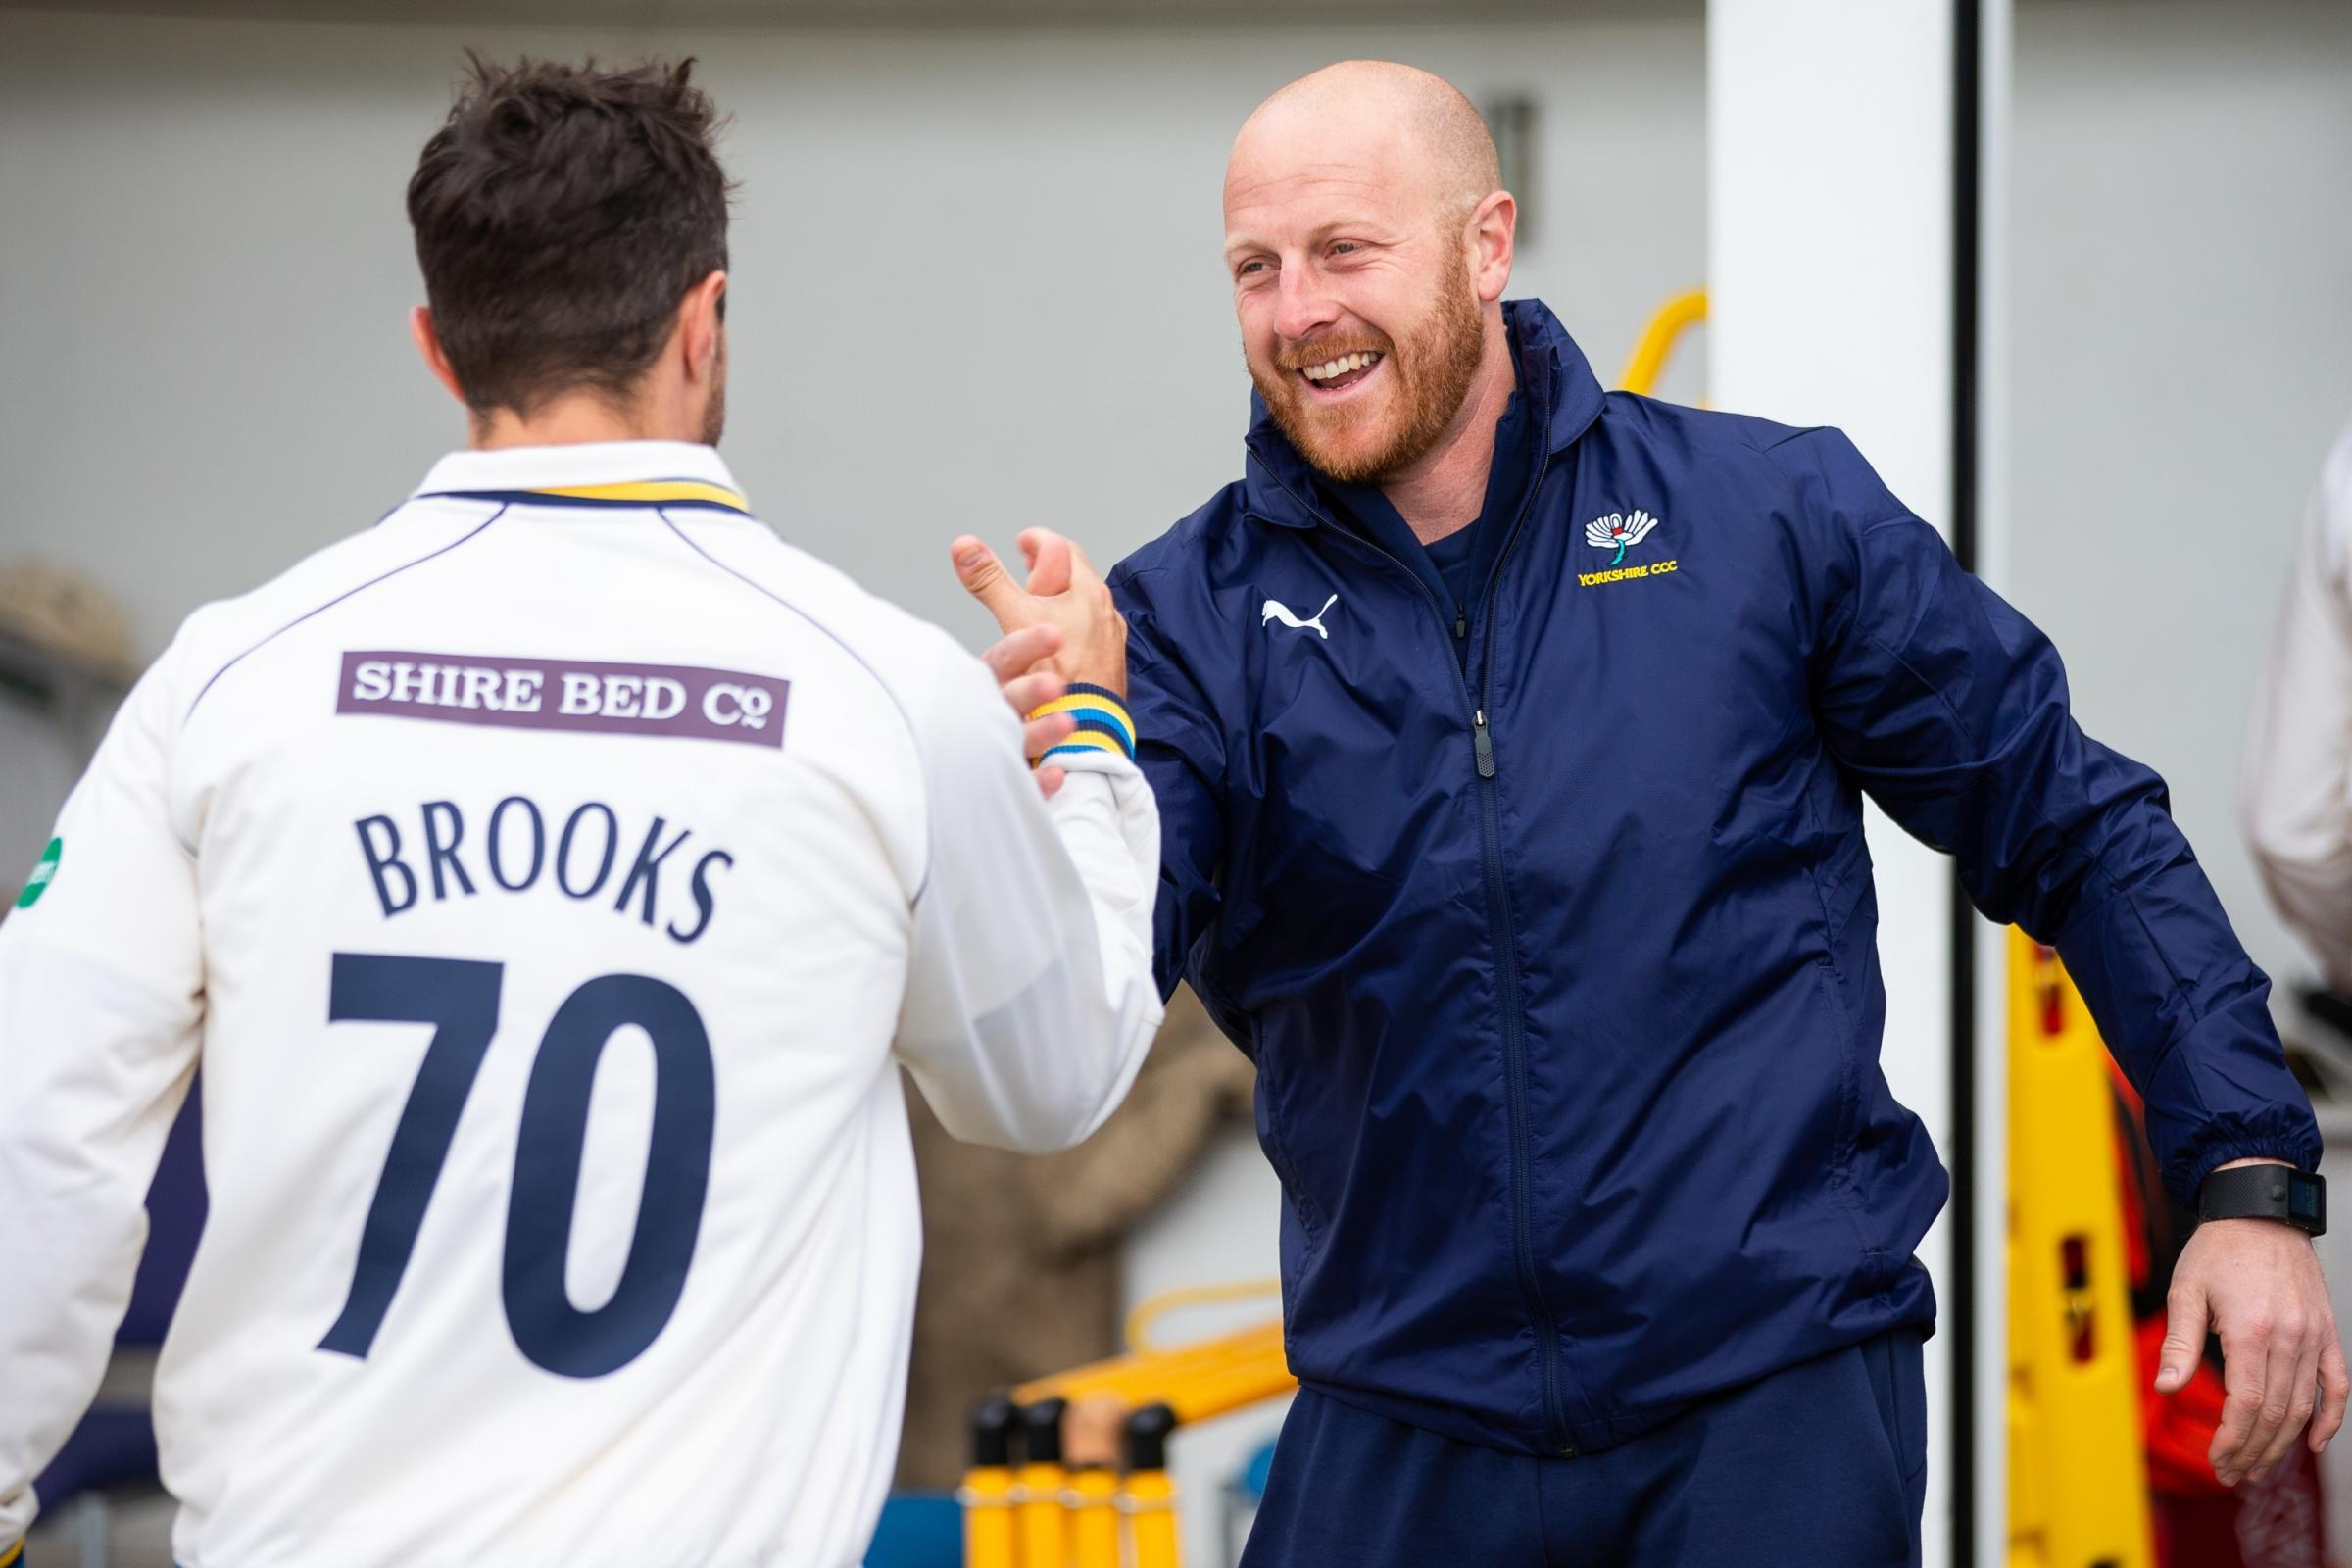 Jack Brooks, pictured celebrating Yorkshire's opening win over Nottinghamshire, is hoping to change his poor record at Taunton    Picture: swpix.com